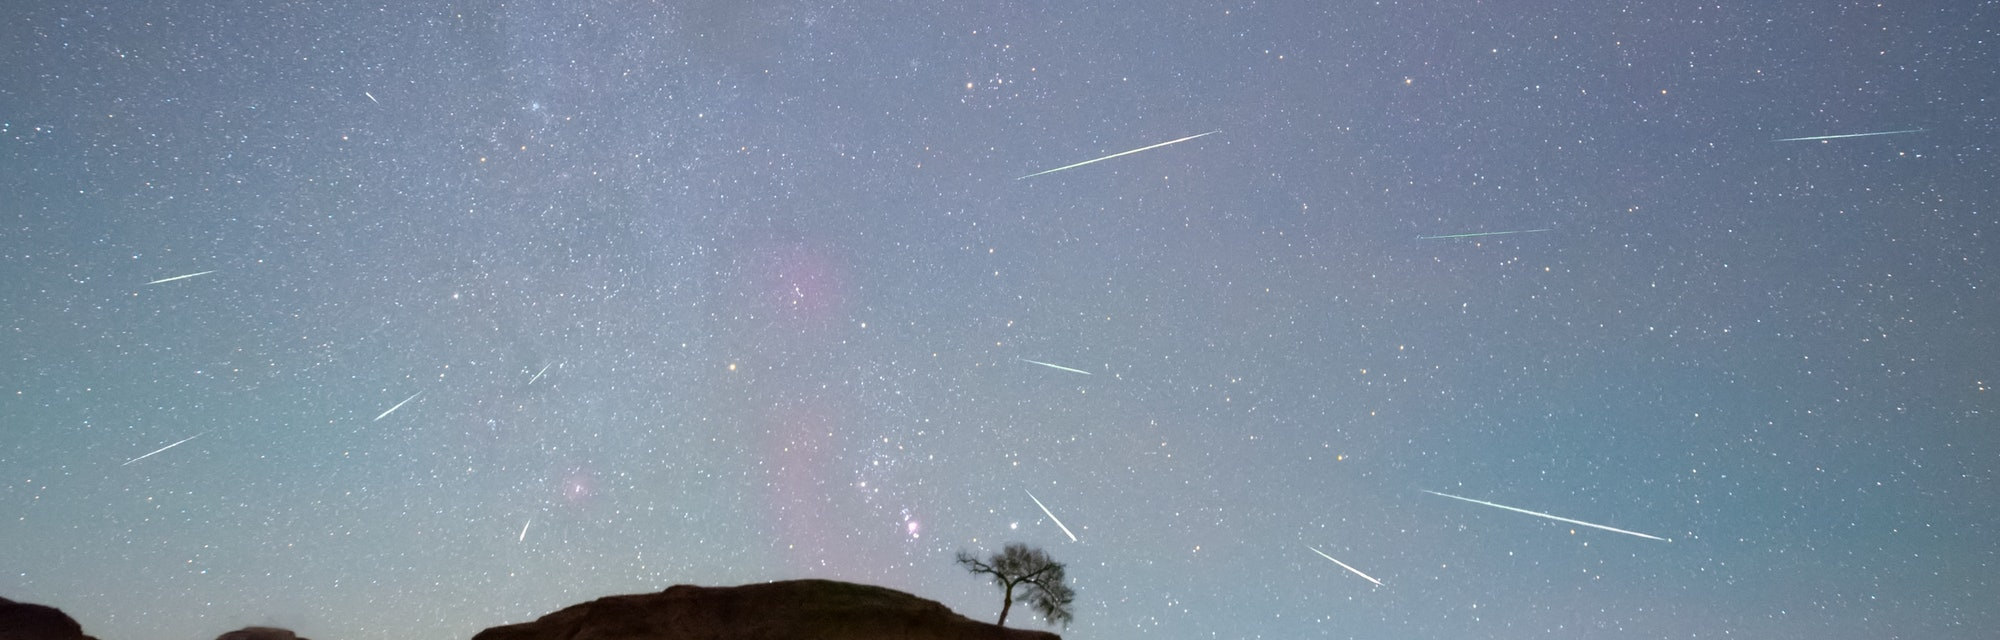 DAQING, CHINA - OCTOBER 22, 2020 - The Orionids meteor shower is seen over the Songhua River in Daqi...